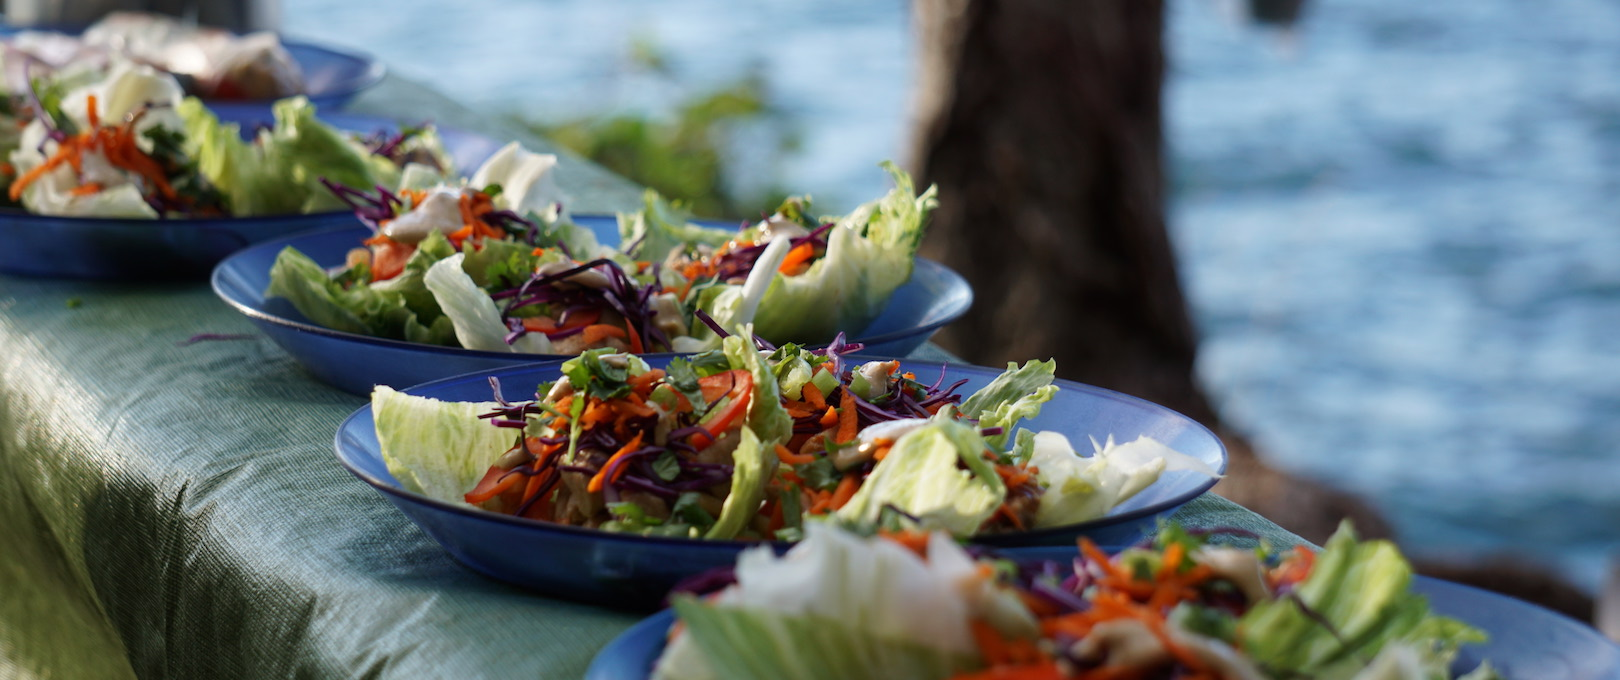 We serve creative, colourful meals like this on all our multi-day kayak tours